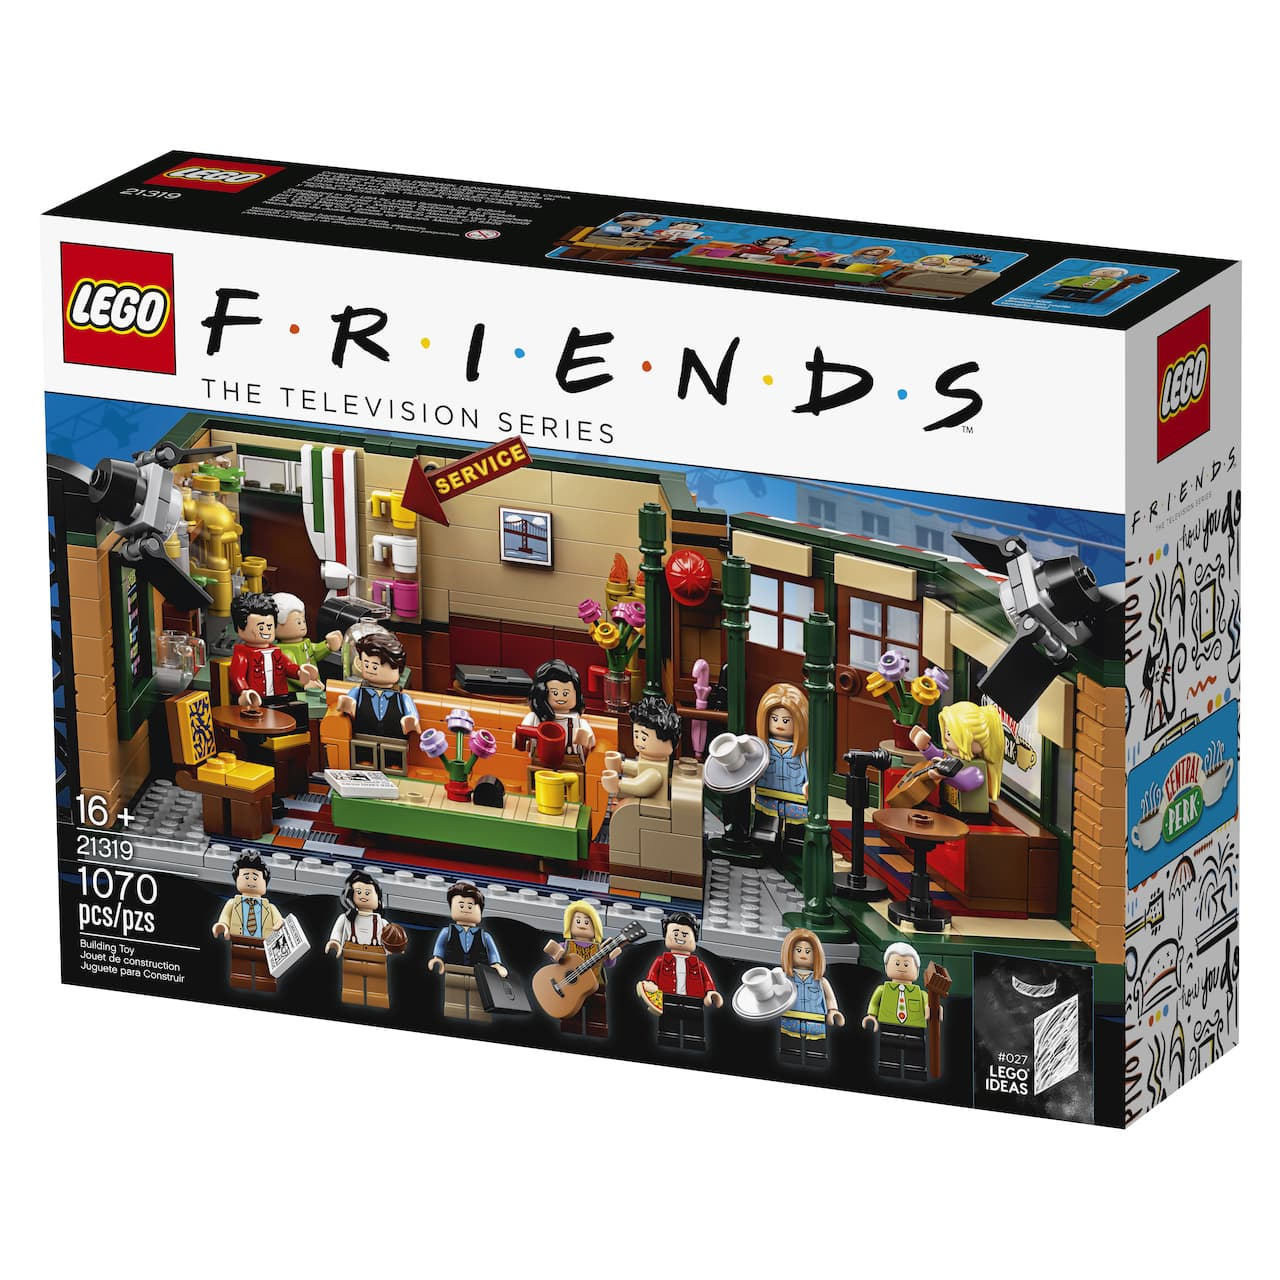 Iconic 90s TV show Friends is getting a LEGO set this September.